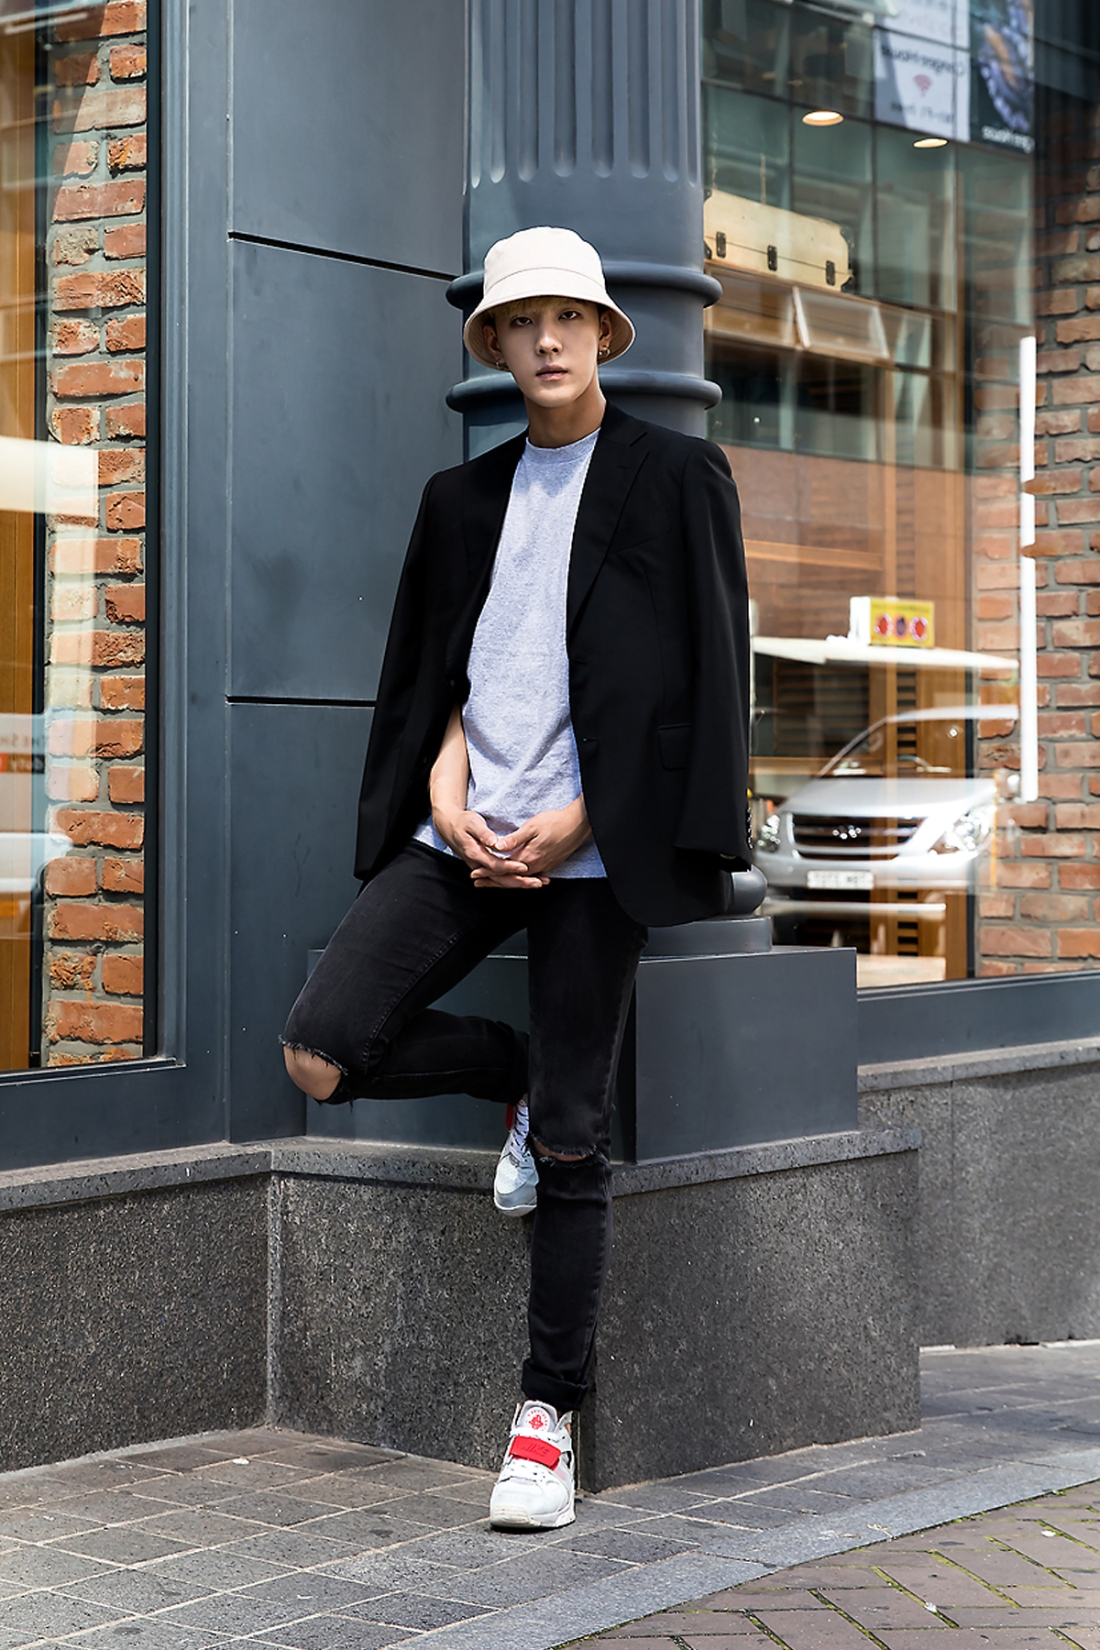 Kim Baul, Street Fashion 2017 in Seoul.jpg